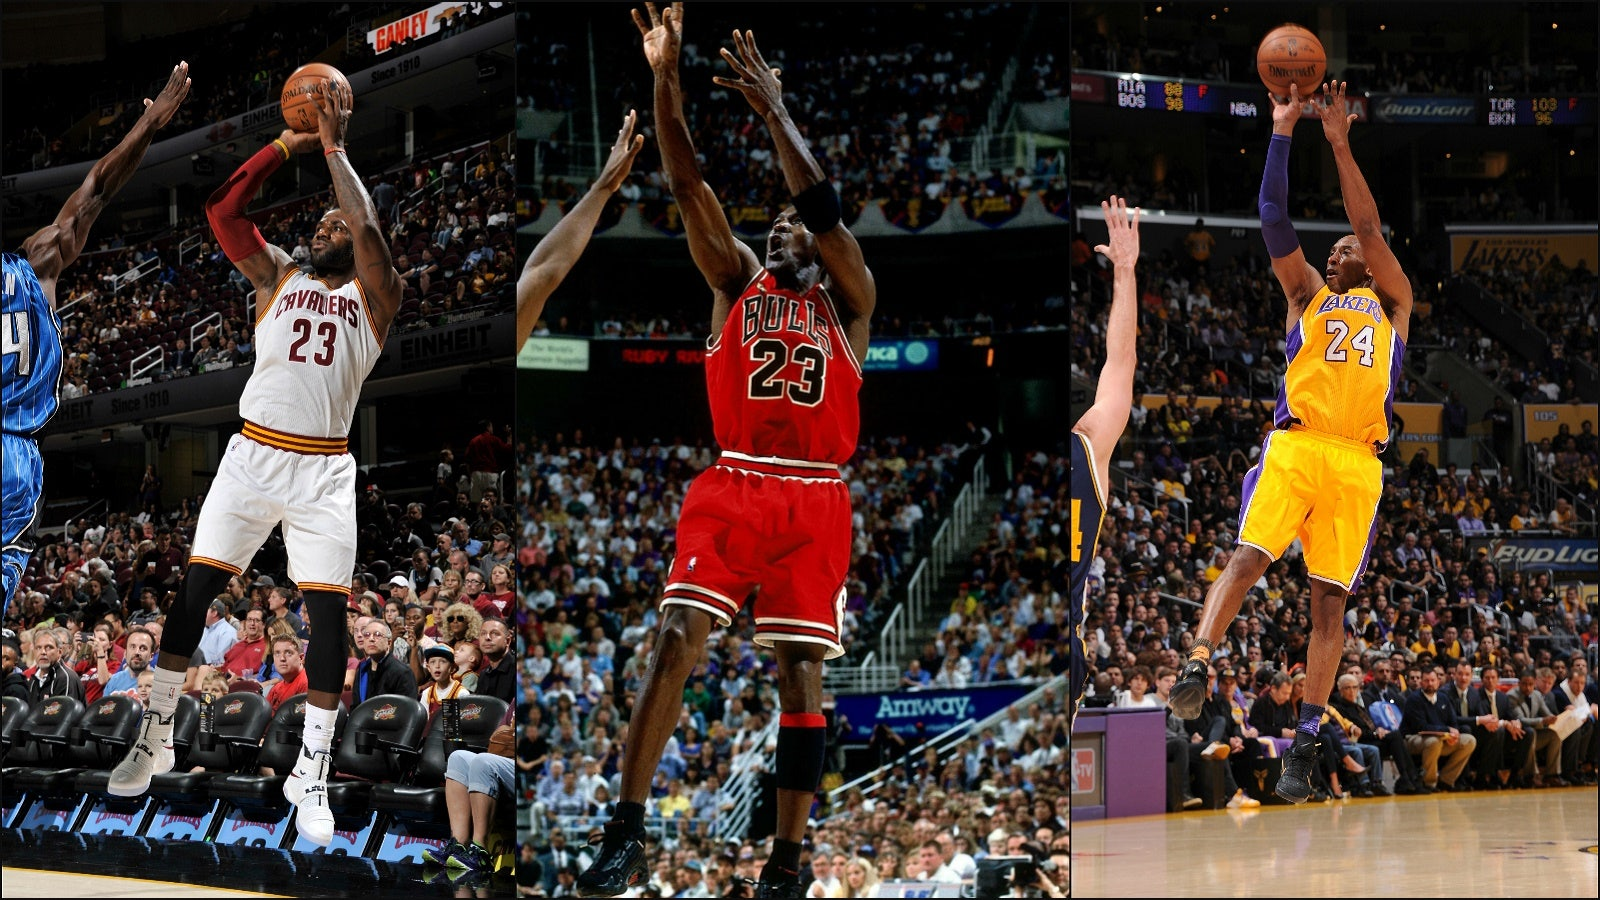 Nba Nba Players Basketball: Ranking The 25 Greatest Players In NBA History